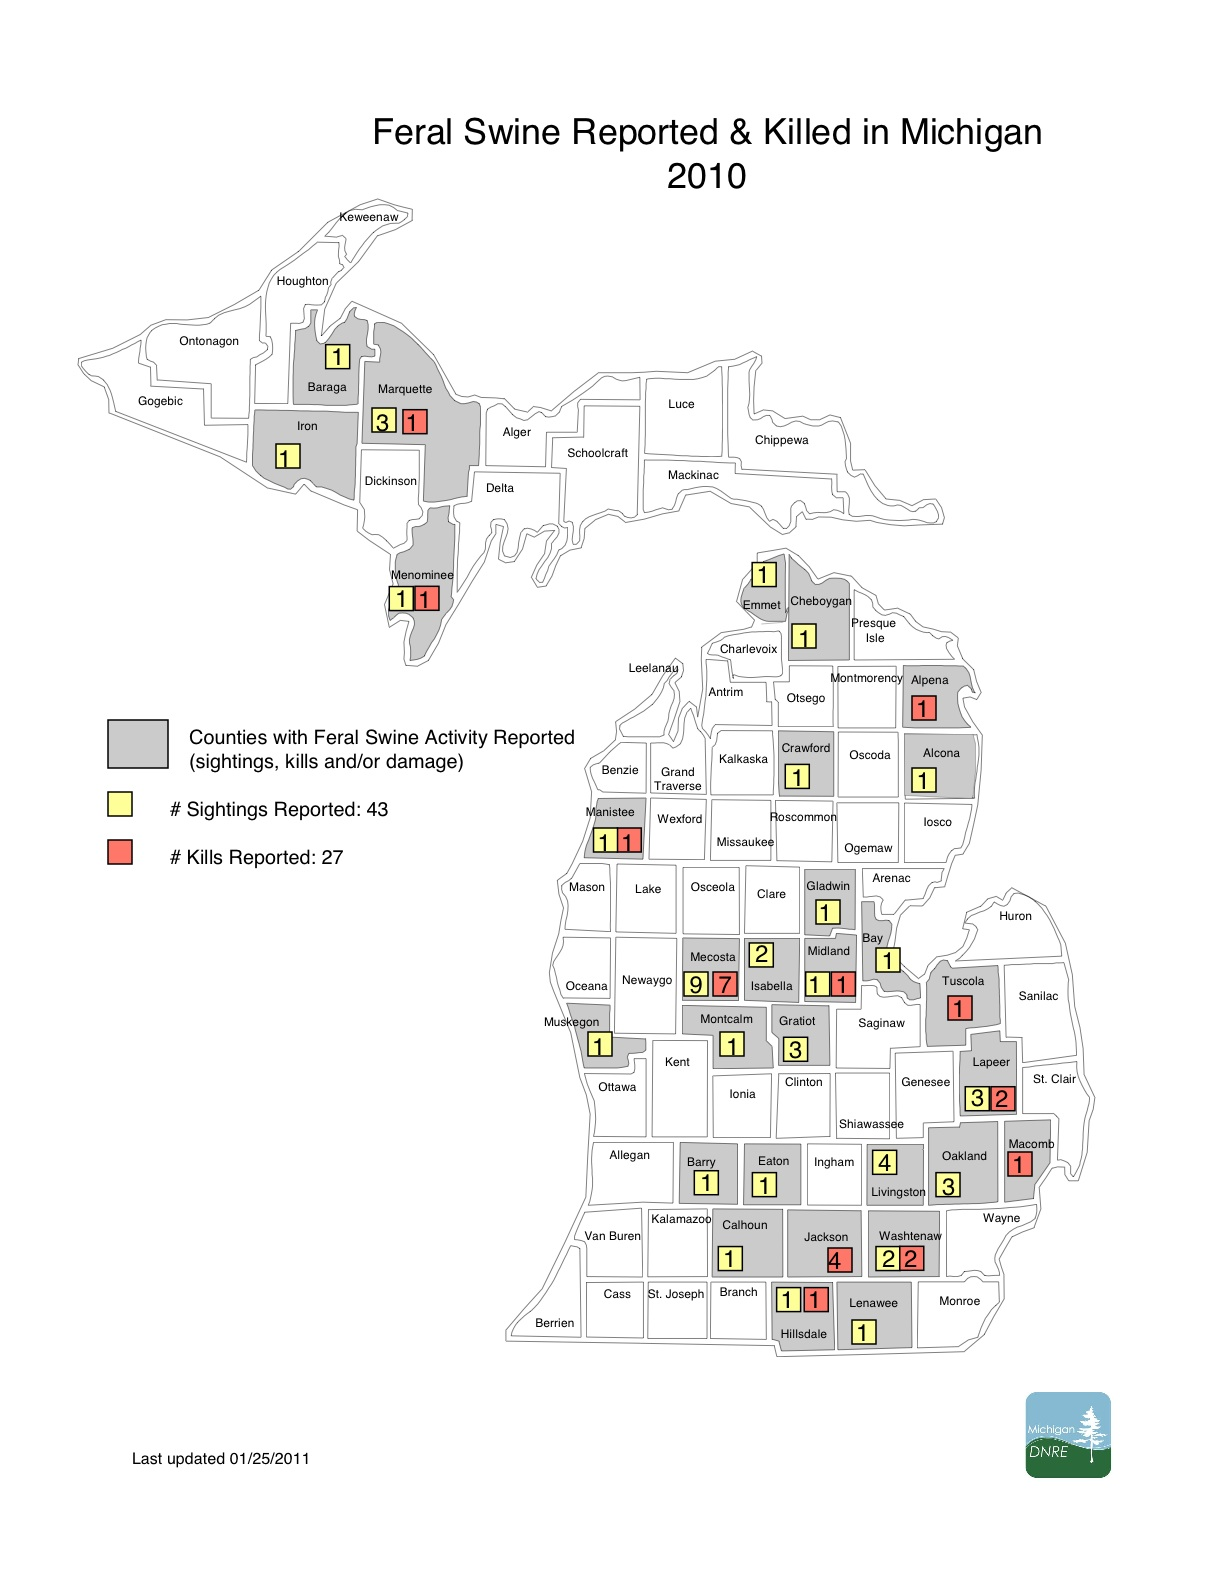 Feral Swine Sightings In Michigan Map.Michigan Feral Swine Map